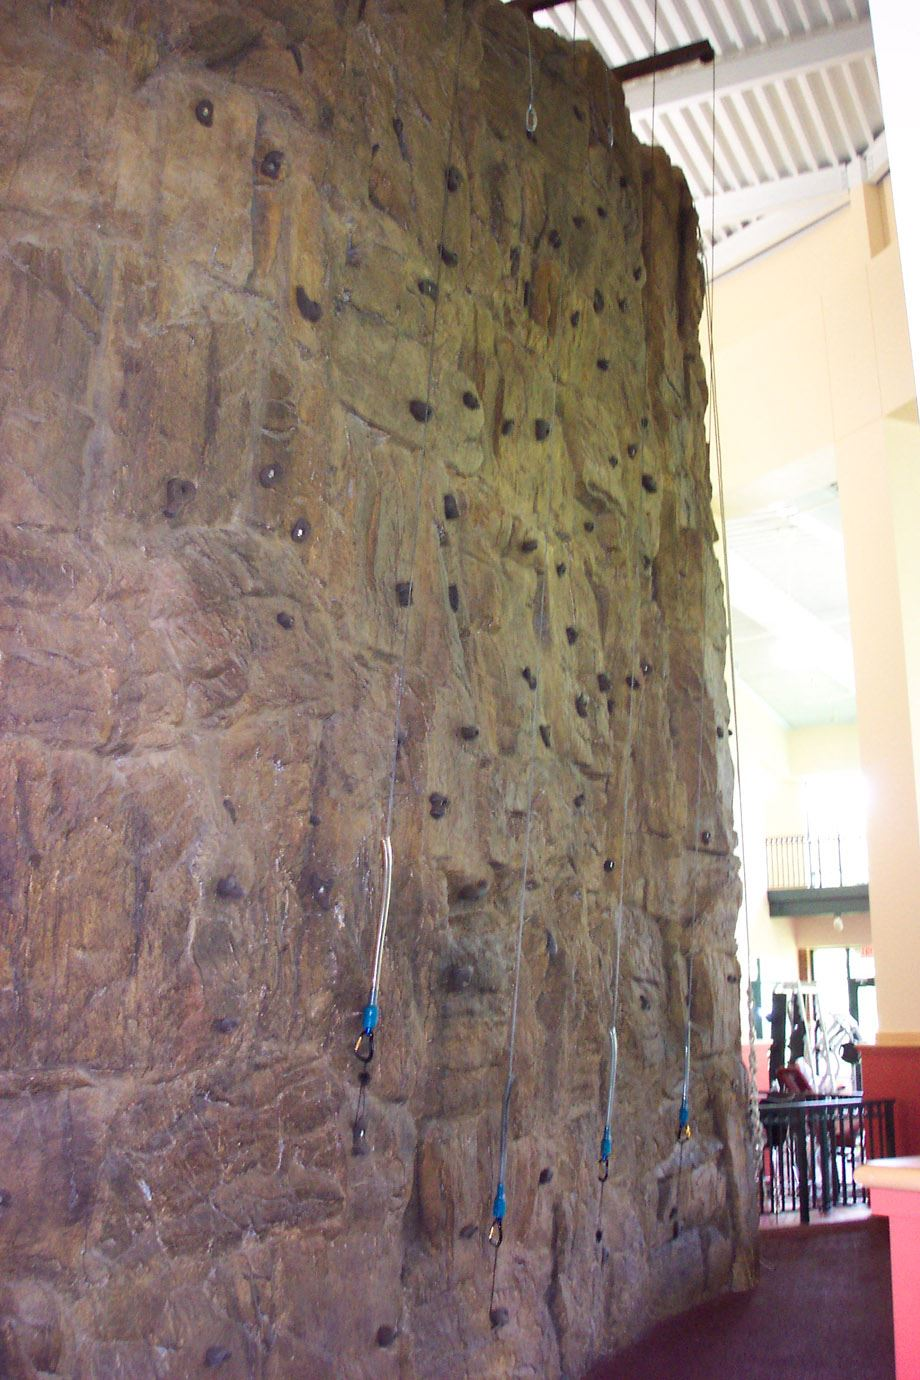 A view of the rock climbing wall in the Recreation Center.